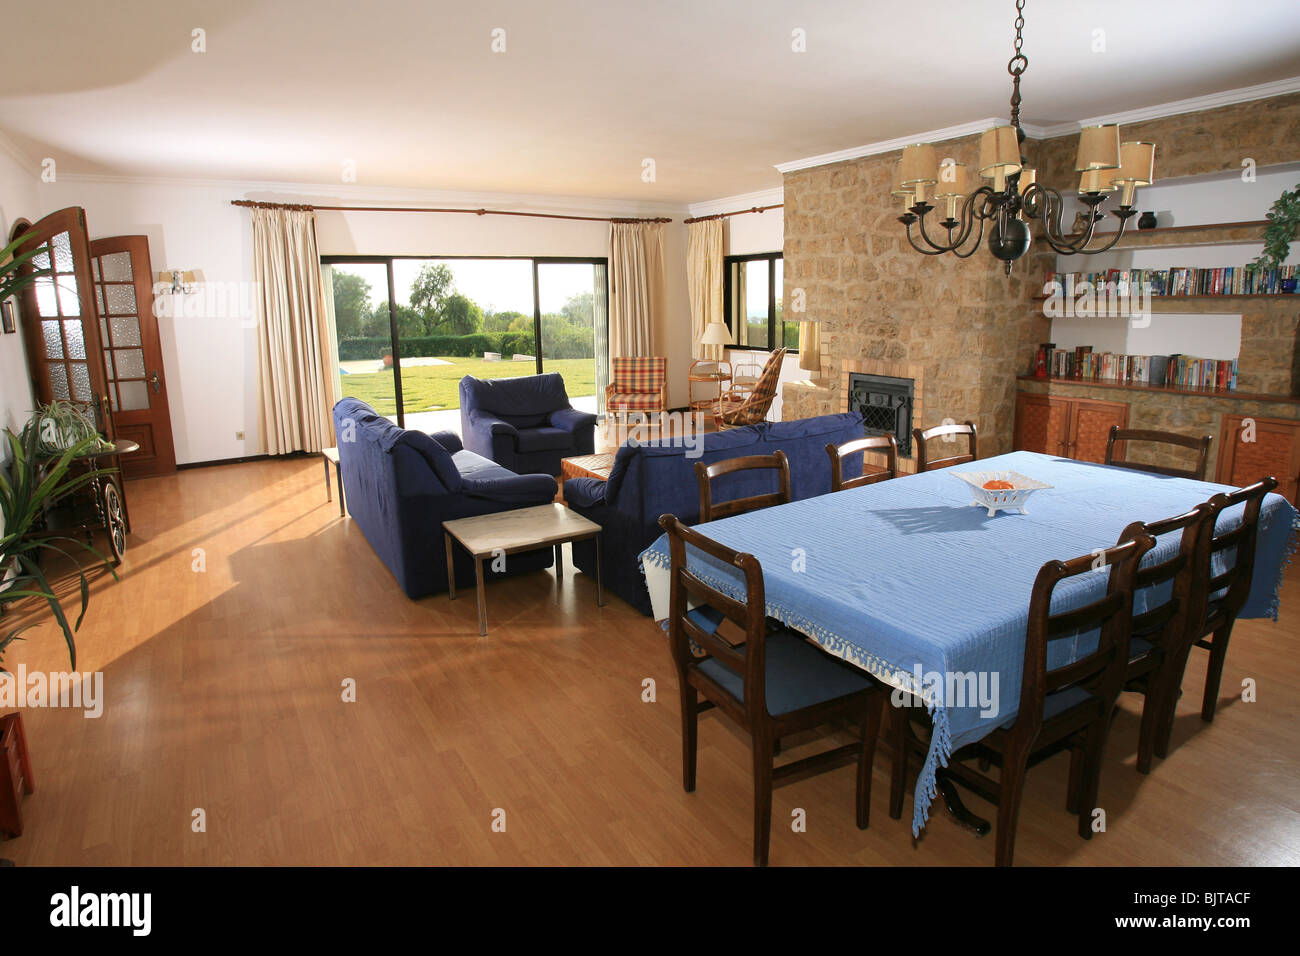 Holiday Vacation Villa Lounge And Dining Room Interior With Furniture Sliding Doors Leading To The Garden Swimming Pool